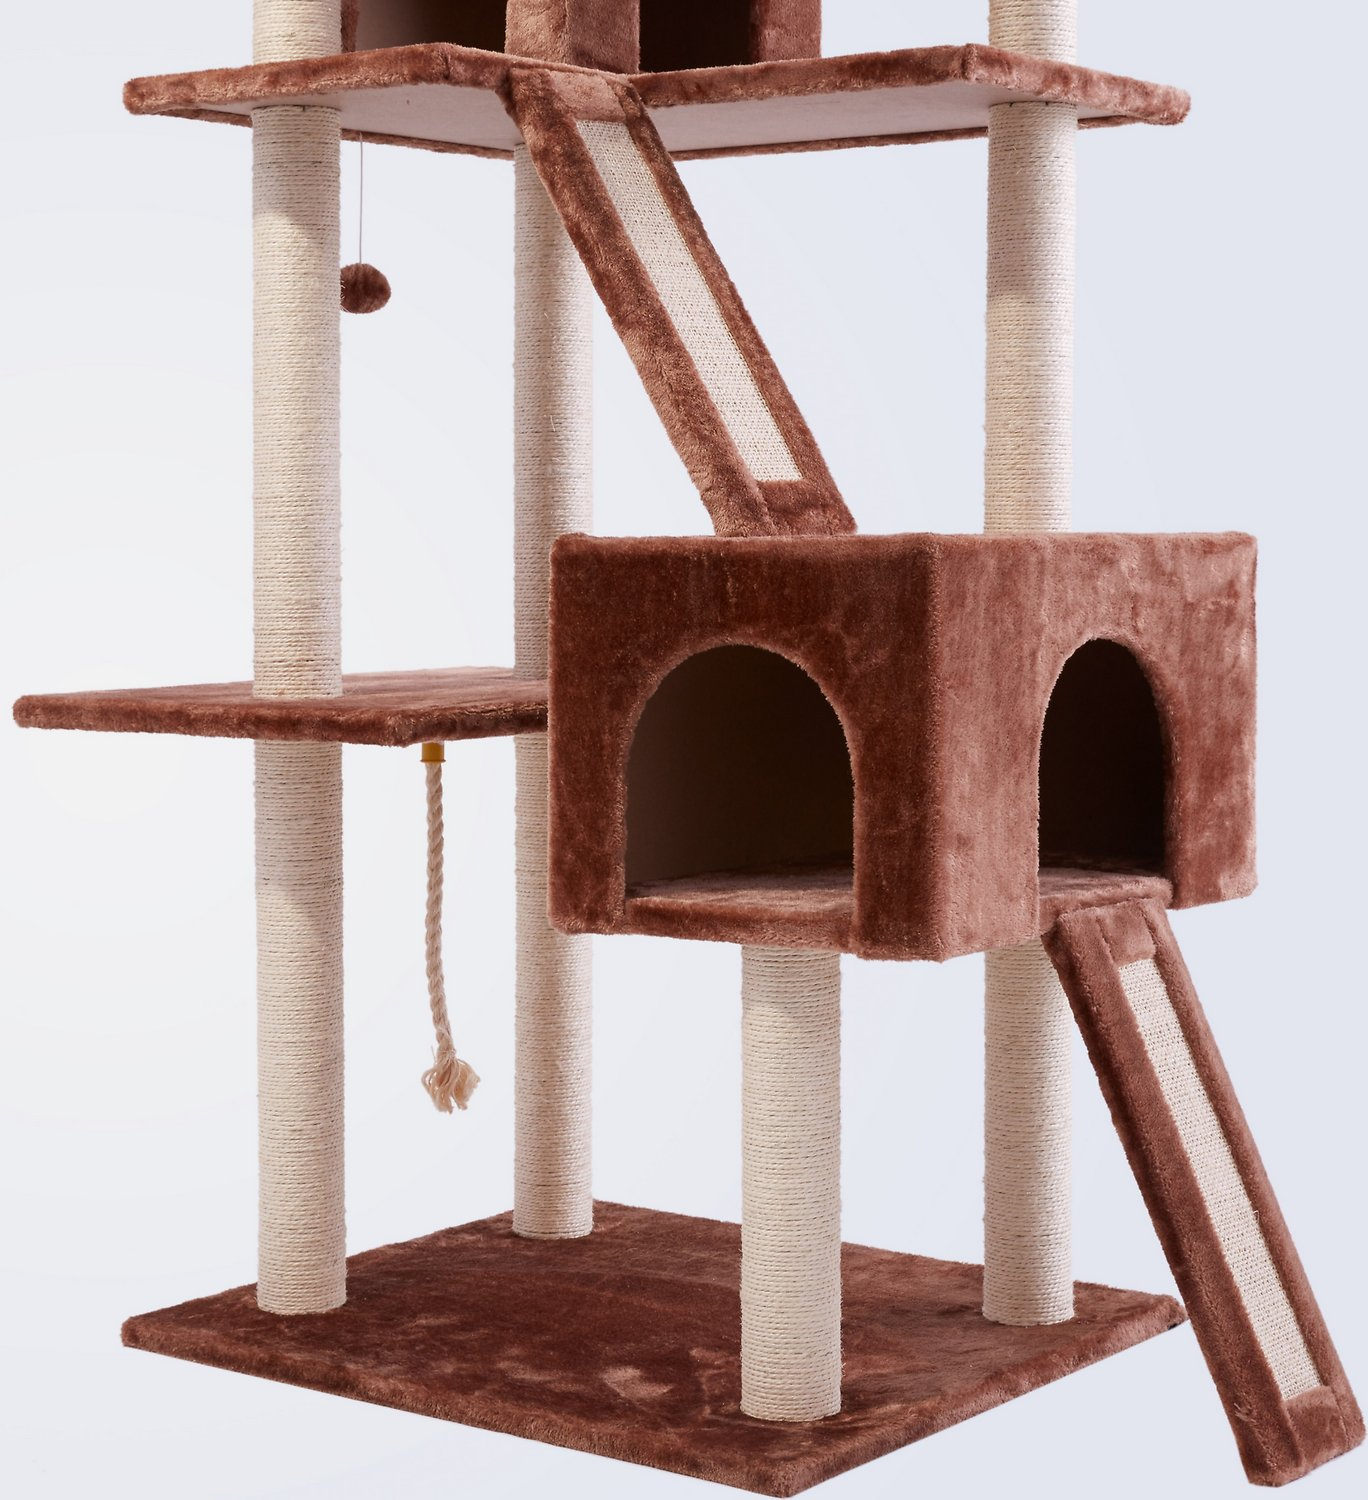 Frisco 72-in Cat Tree, Large Base, Brown Frisco 72-in Cat Tree, Large Base, Brown new foto